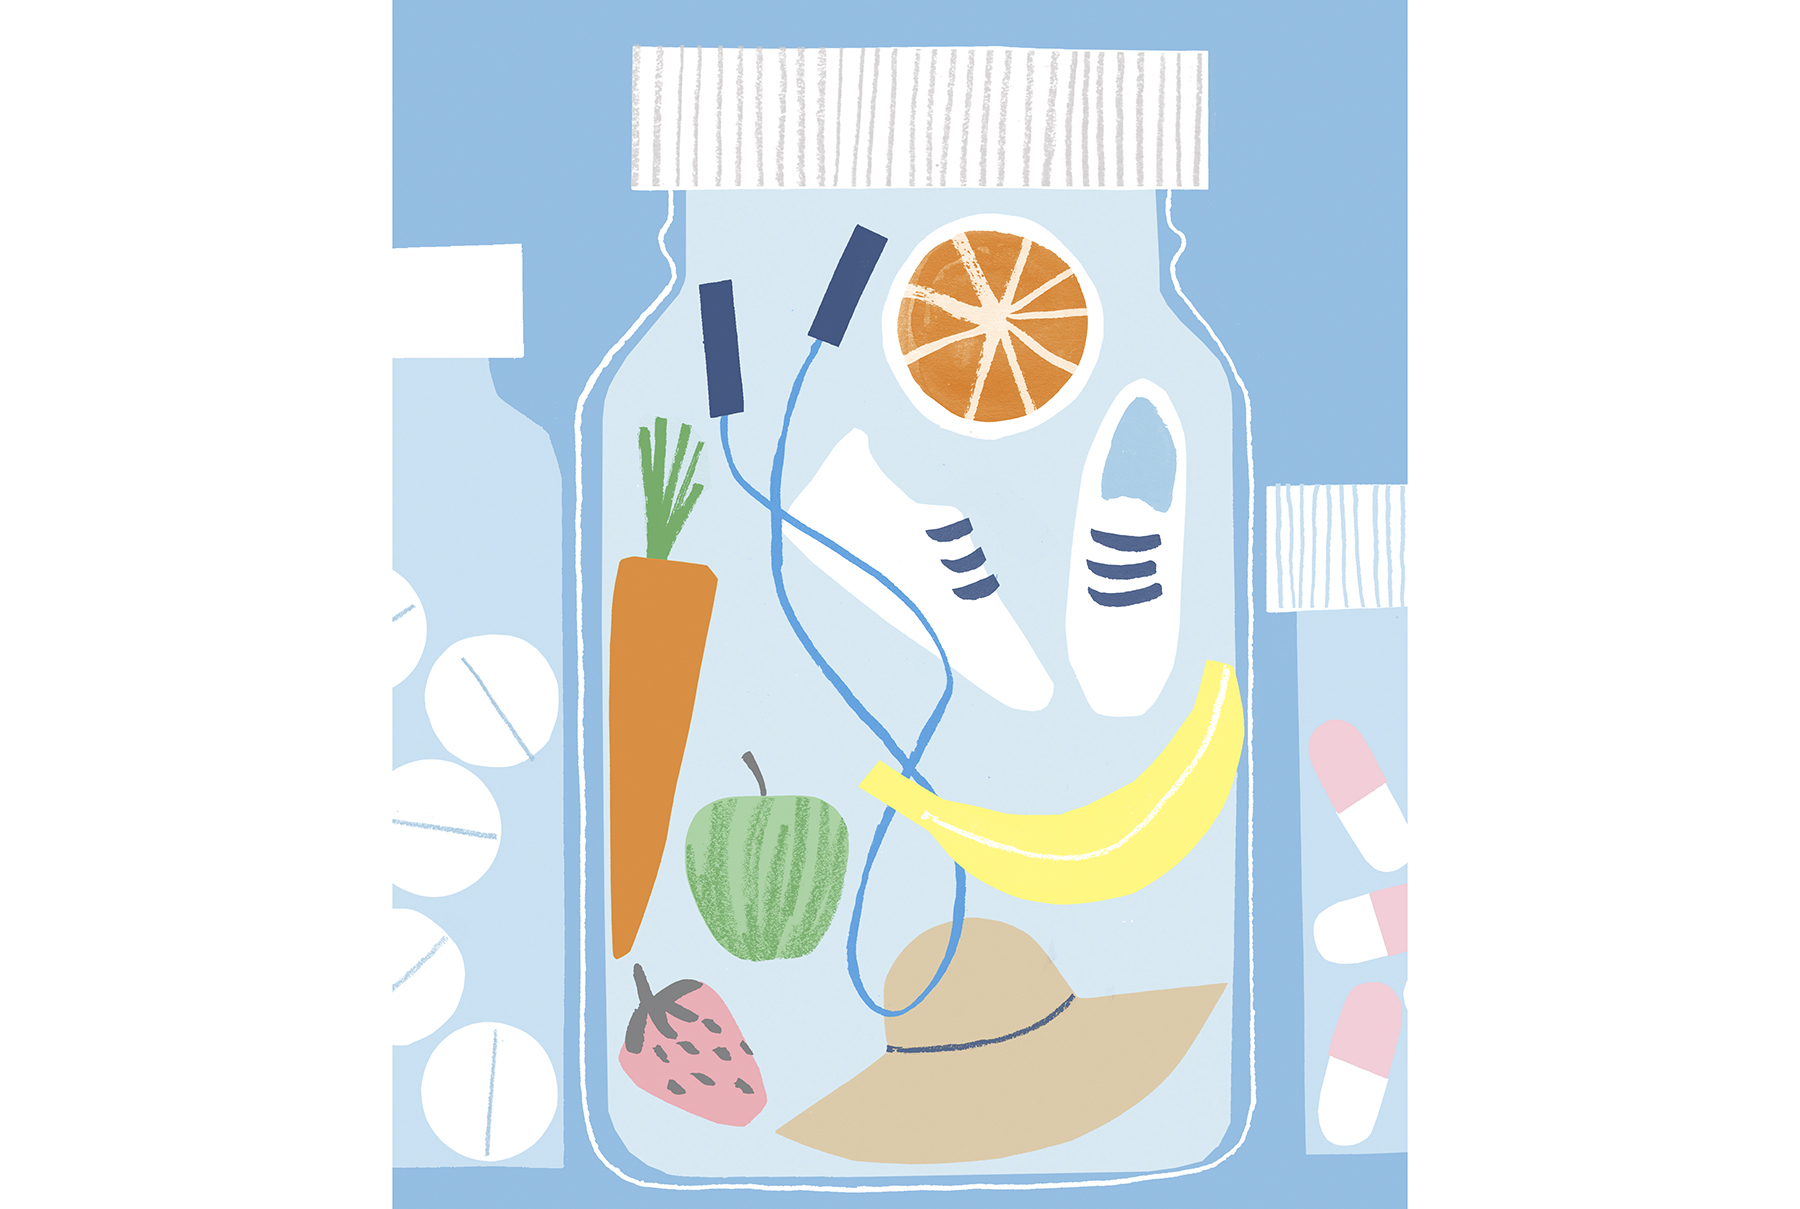 Illustration: Jar of healthy things